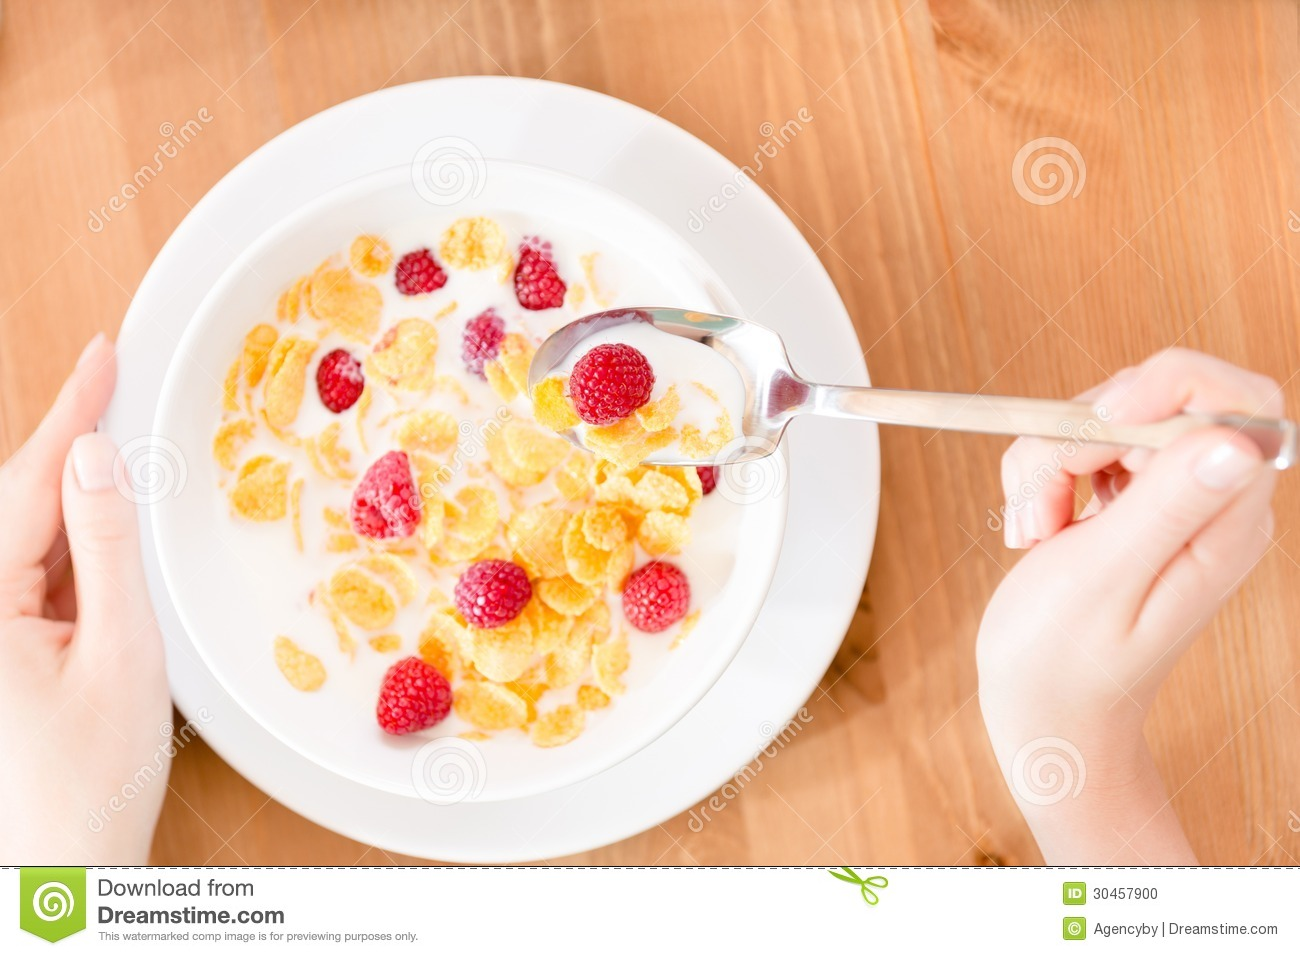 Top view of woman eating muesli with strawberry and milk